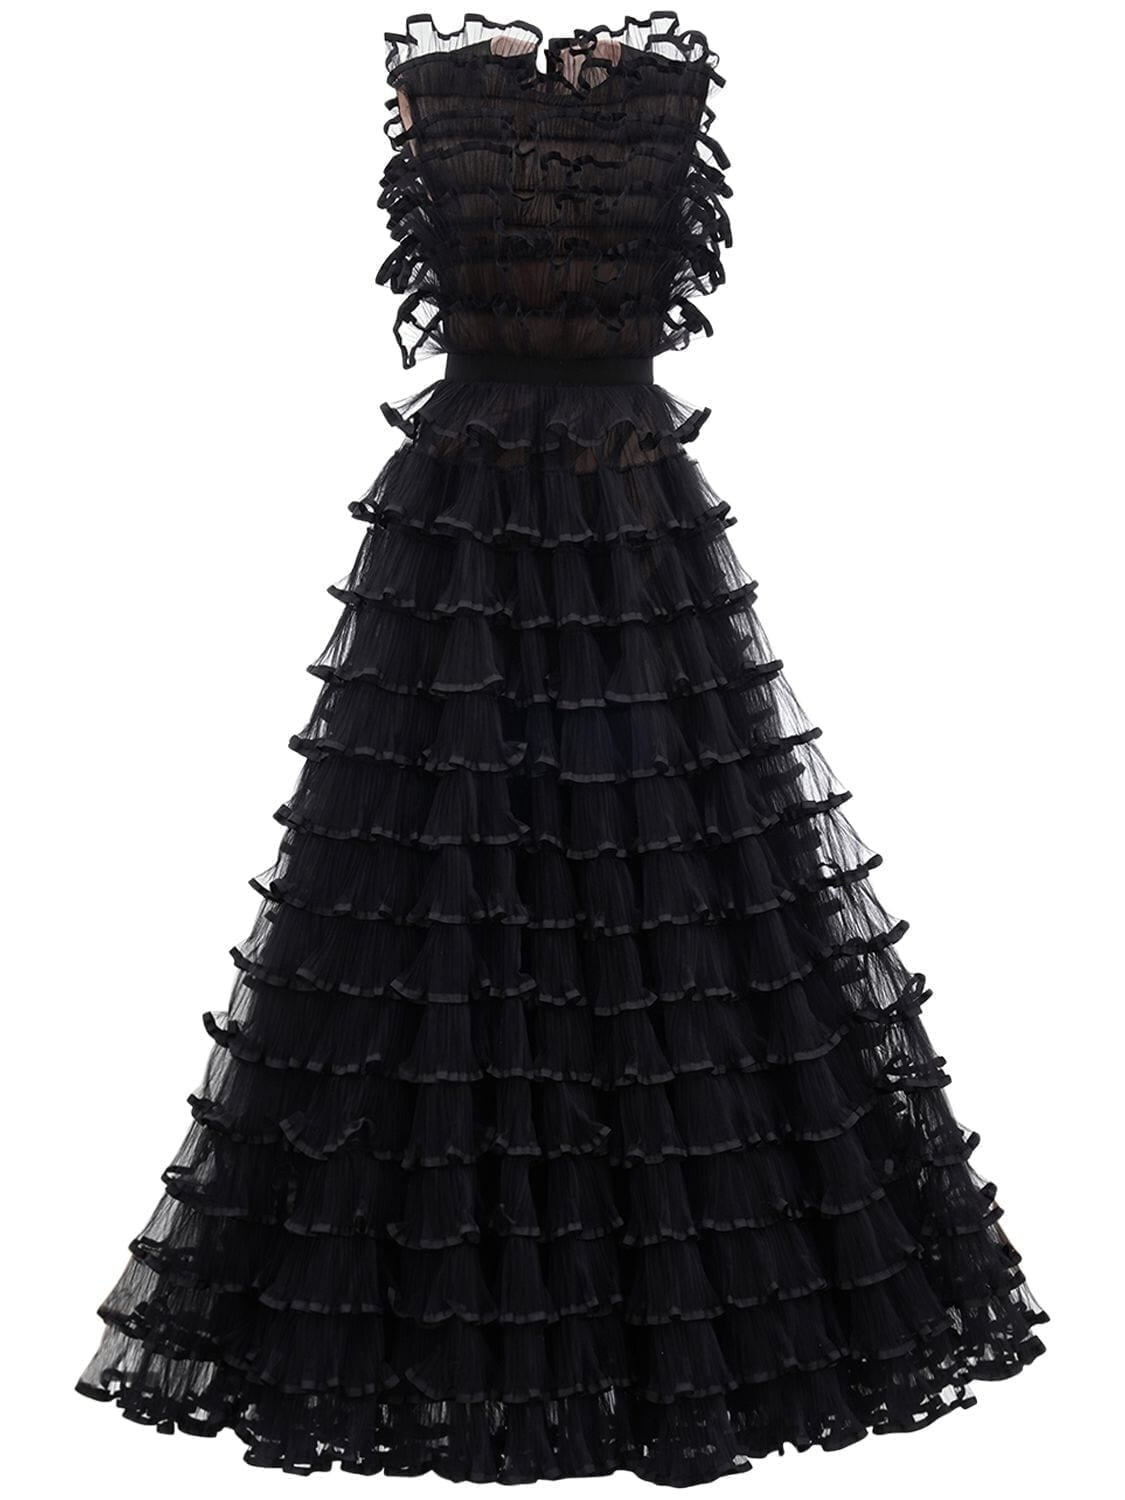 GIAMBATTISTA VALLI Sleeveless Ruffled Tulle Dress